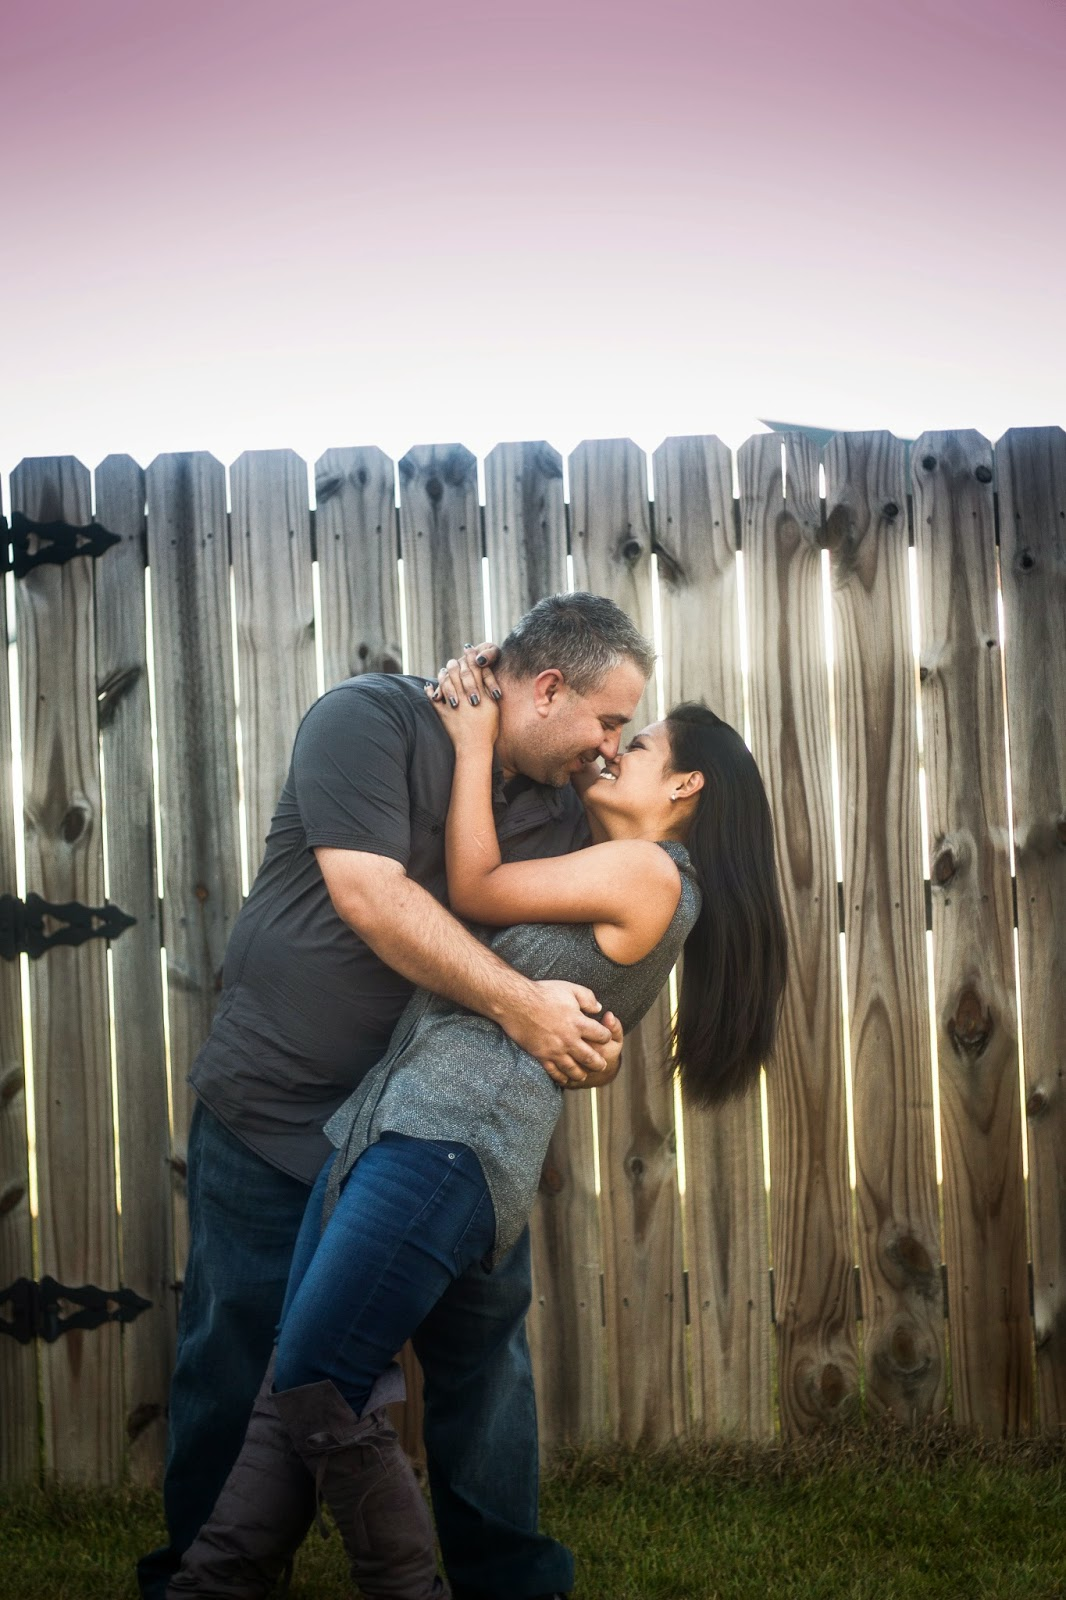 Justin Amy Our Family Engagement Session Greenville NC Photographer Bryant Tyson Photography 7